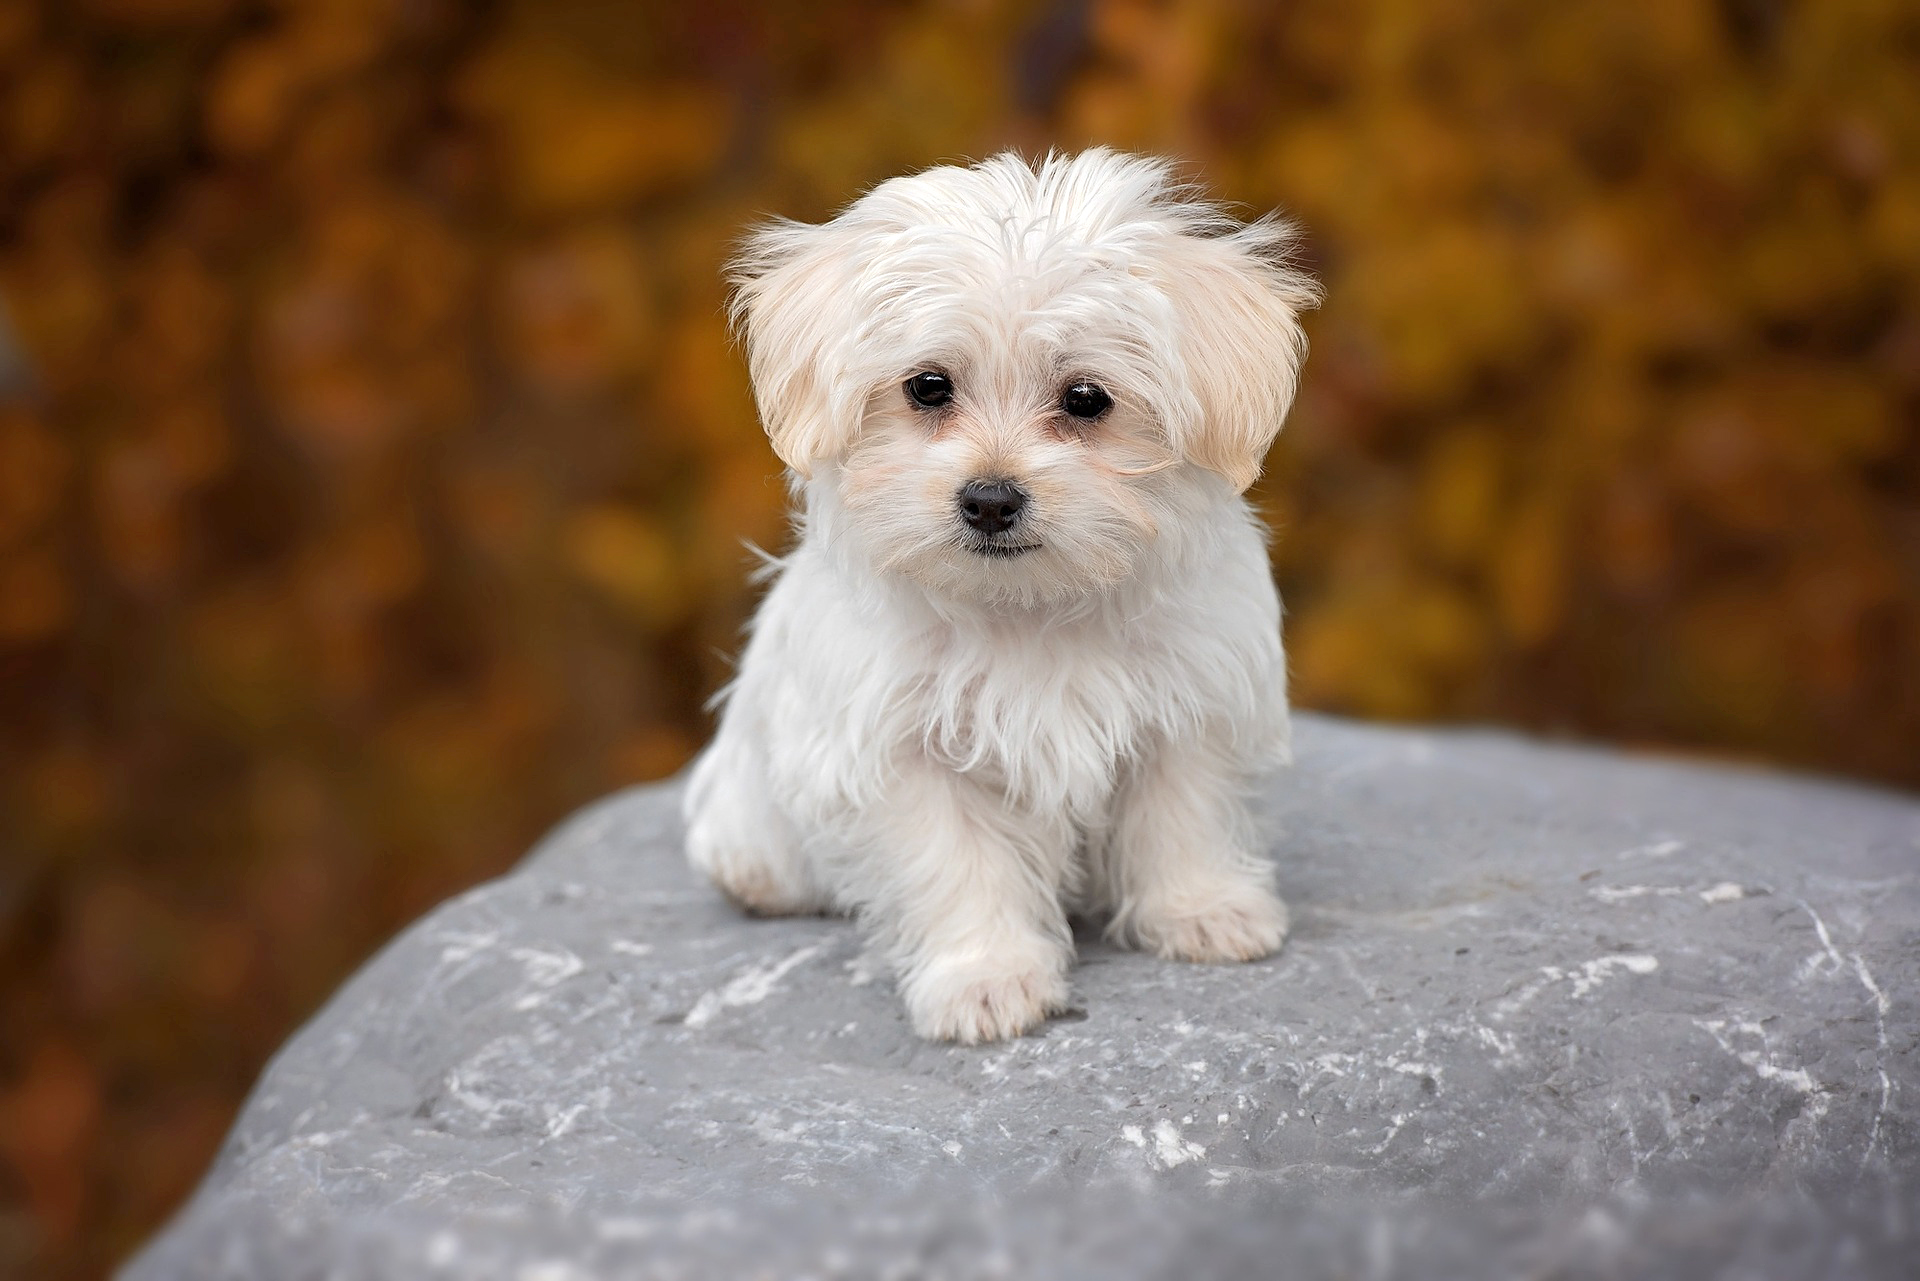 Maltese puppy dog, easiest small dogs to housebreak, photo by Pezibear.